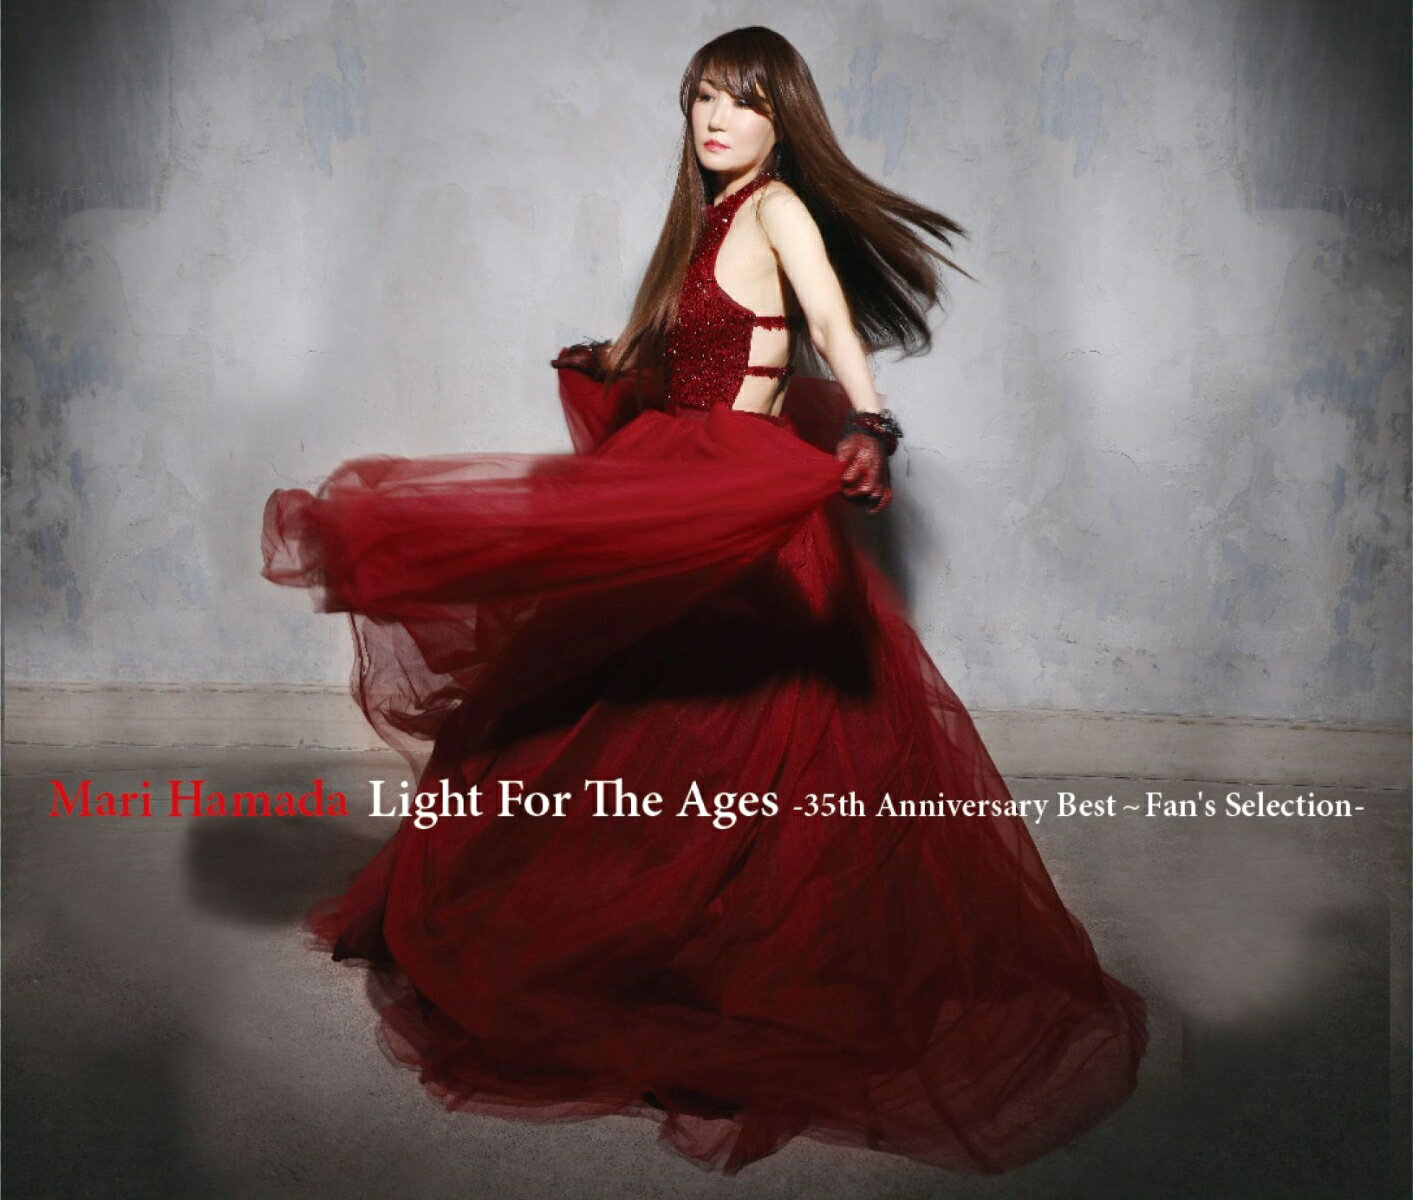 Light For The Ages -35th Anniversary Best〜Fan's Selection- (初回限定盤 3CD+PHOTO BOOK) [ 浜田麻里 ]